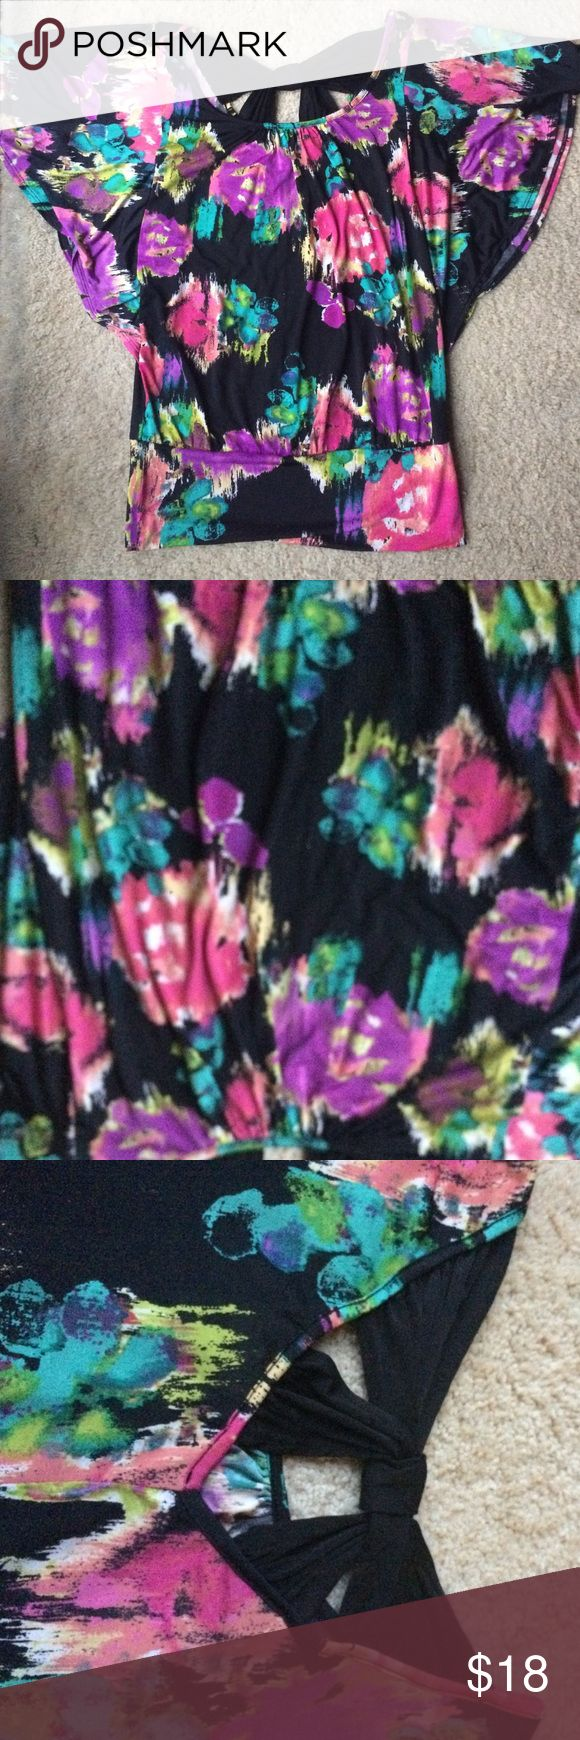 Black flutter sleeve top Black flutter sleeve top with abstract Floral pattern, beautiful vibrant colors. Silky feel, cross cross detail in back, and comes in at hips. Can be dressed up or down! HeartSoul Tops Blouses